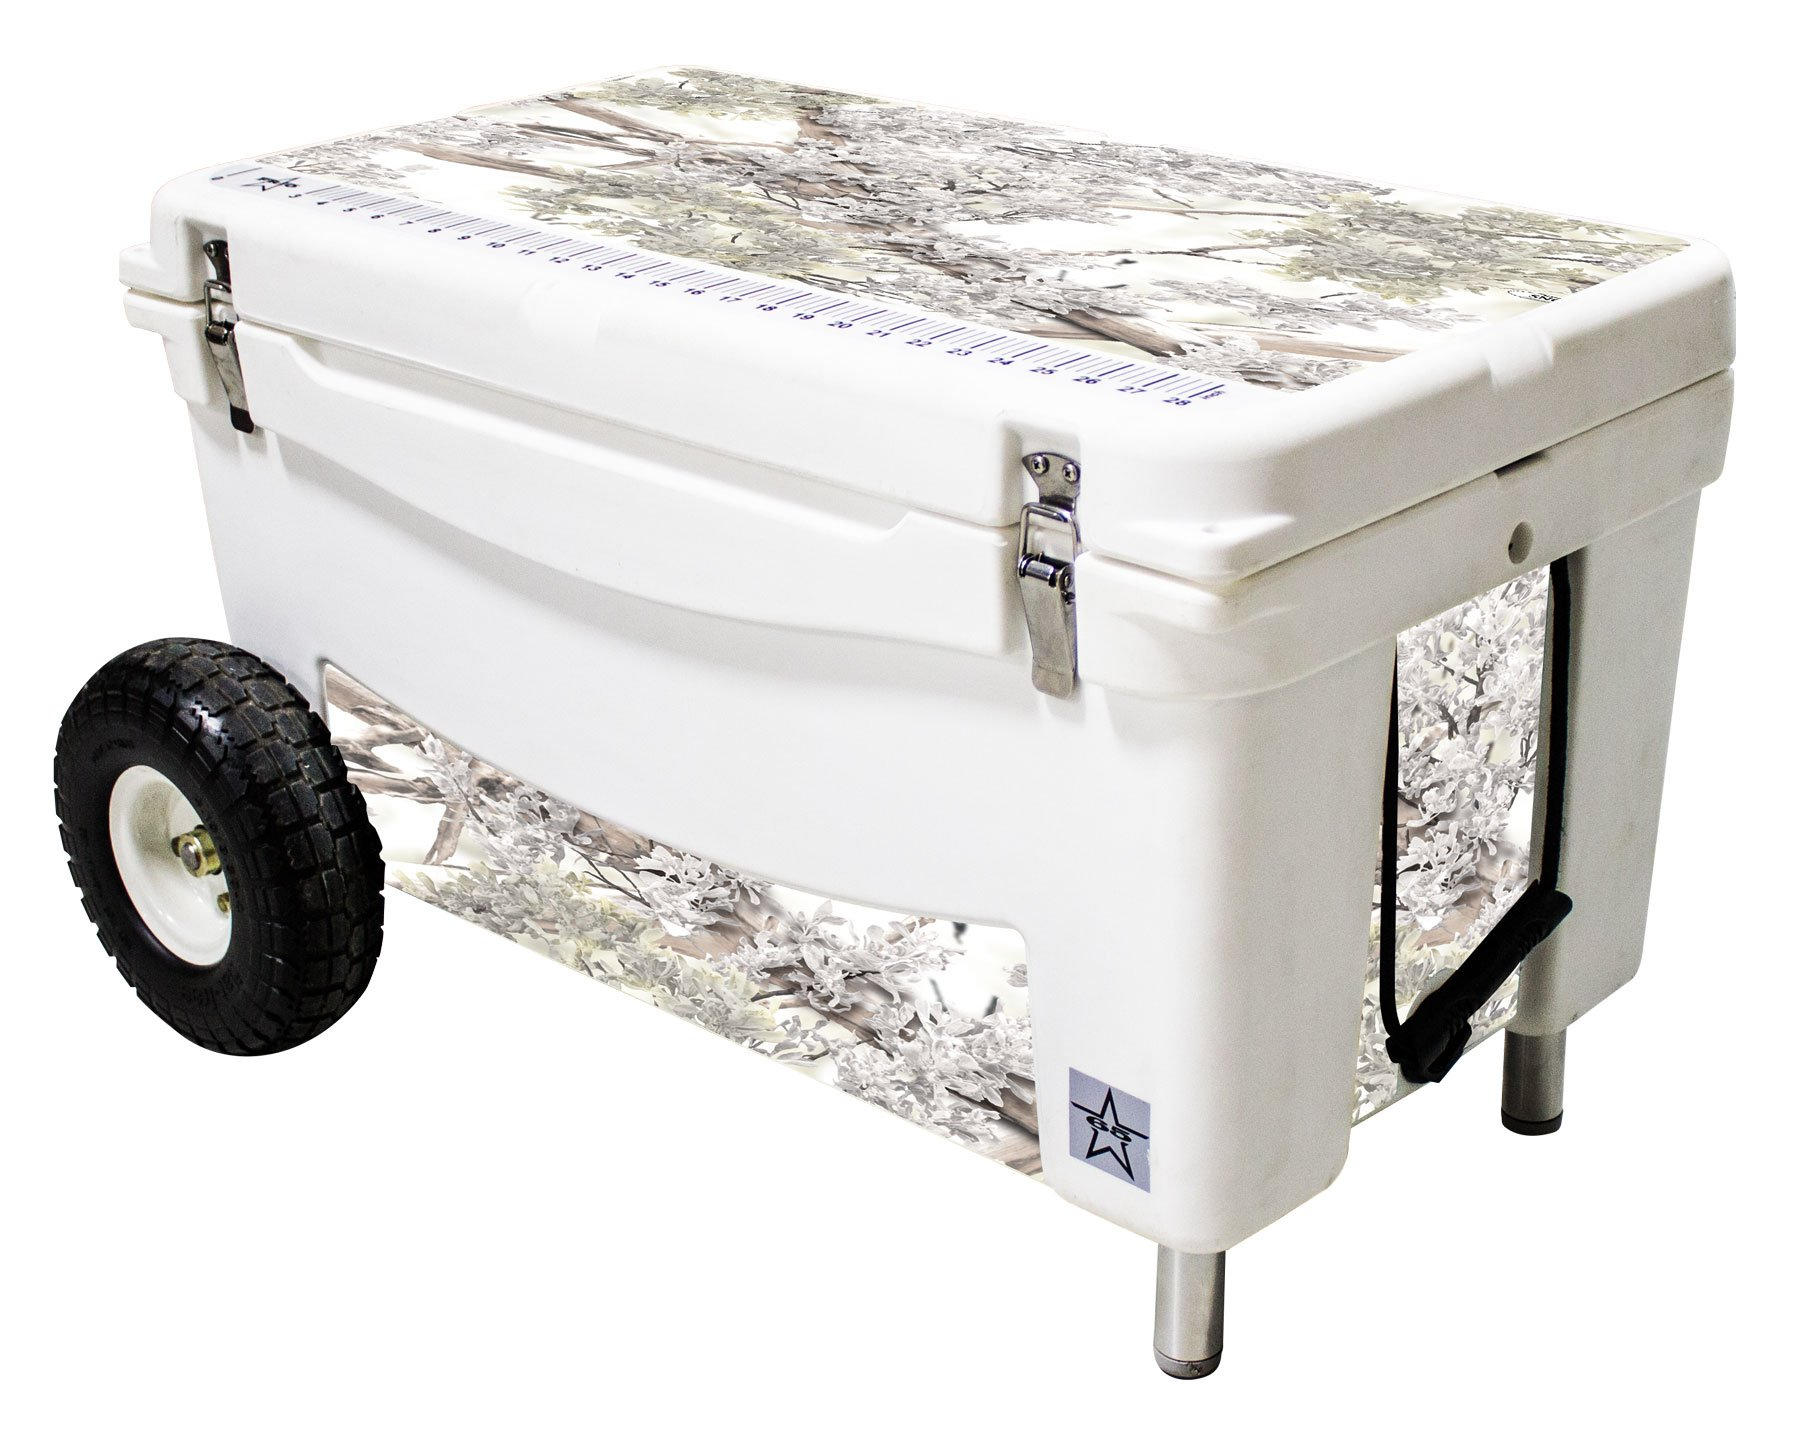 Frio Ice Chests 65Qt Extreme Wheeled White Hard Side with King's Camo Snow Theme Vinyl Wrap and Built-in Motion Sensitive Light Bar with Bottle Openers by Frio Ice Chests